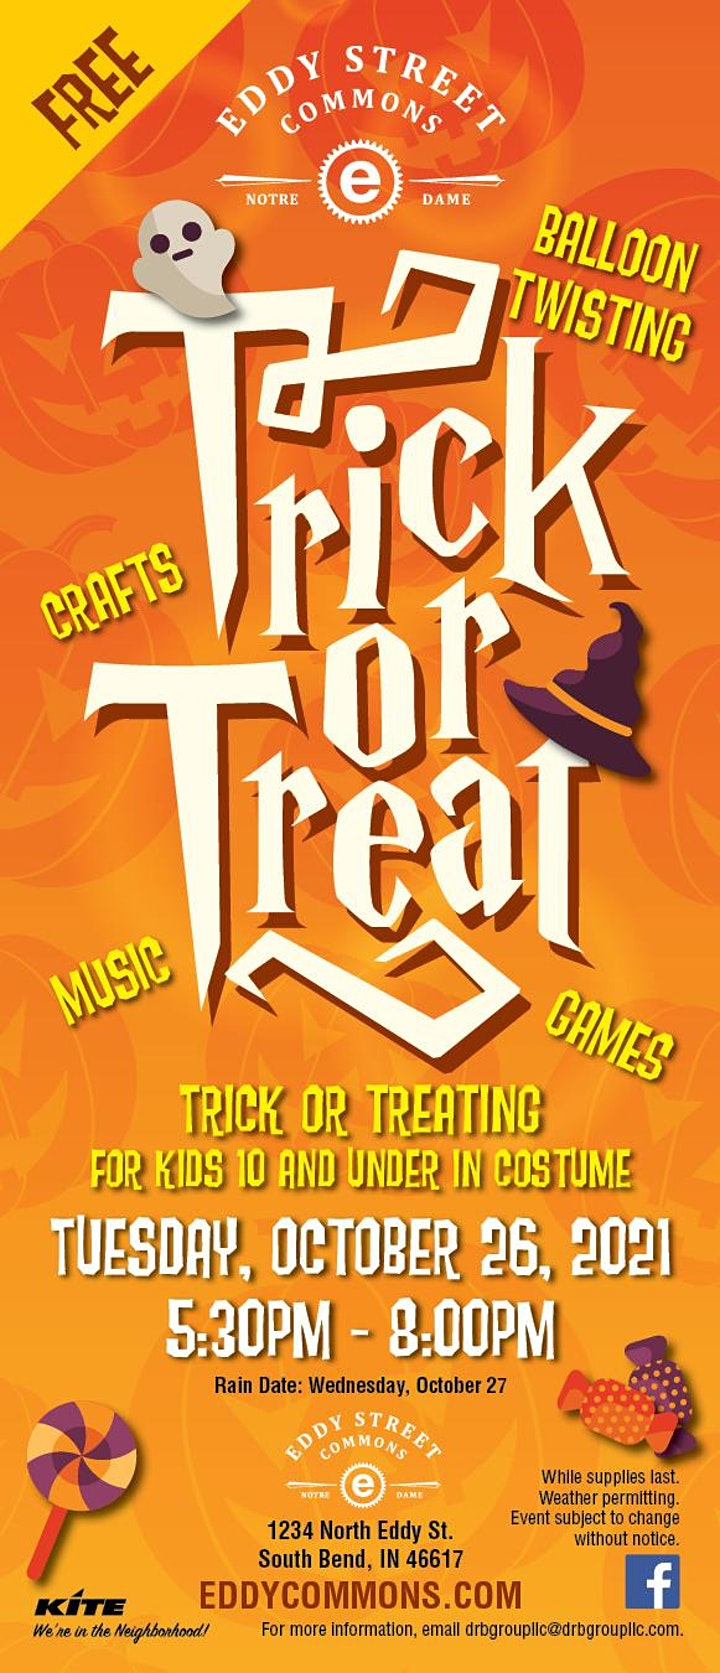 Trick or Treat Event at the Eddy Street Commons image